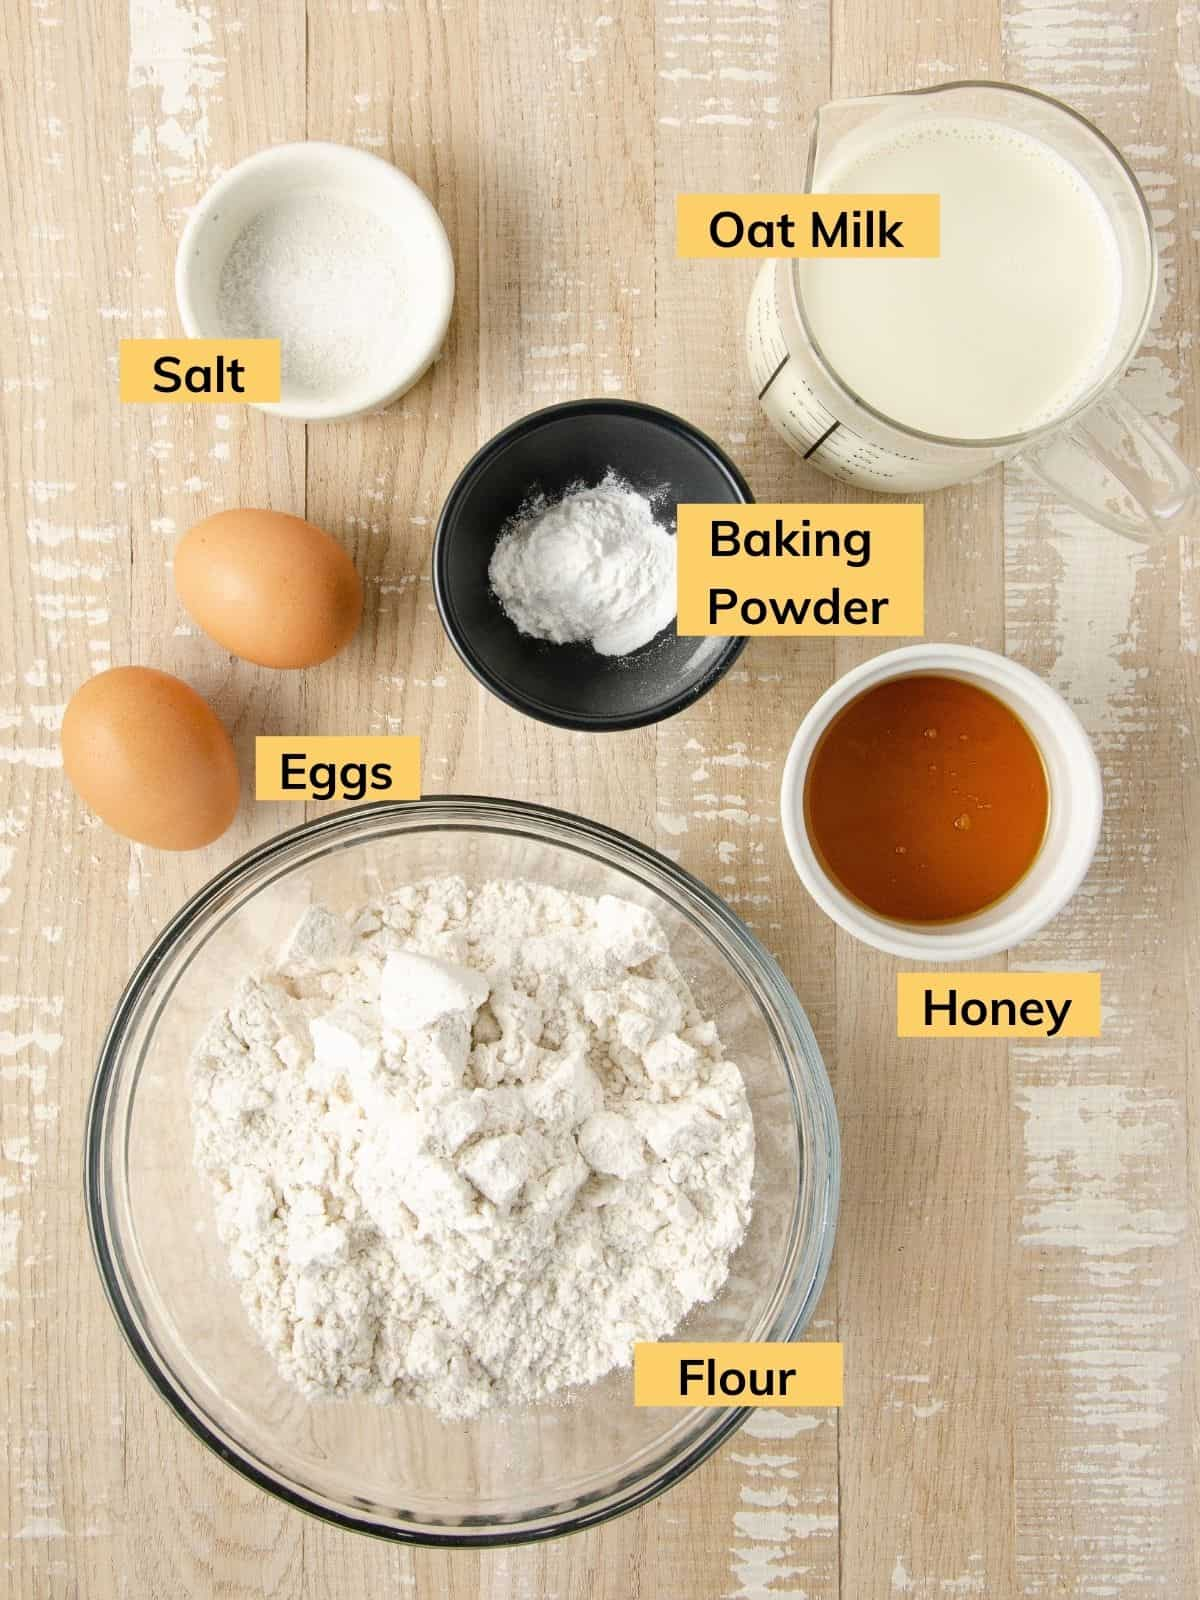 ingredients prepped for pancakes: gluten free flour in a glass bowl, a ramekin of honey, a black bowl of baking powder, two eggs, a small bowl with salt, and a measuring cup filled with oat milk